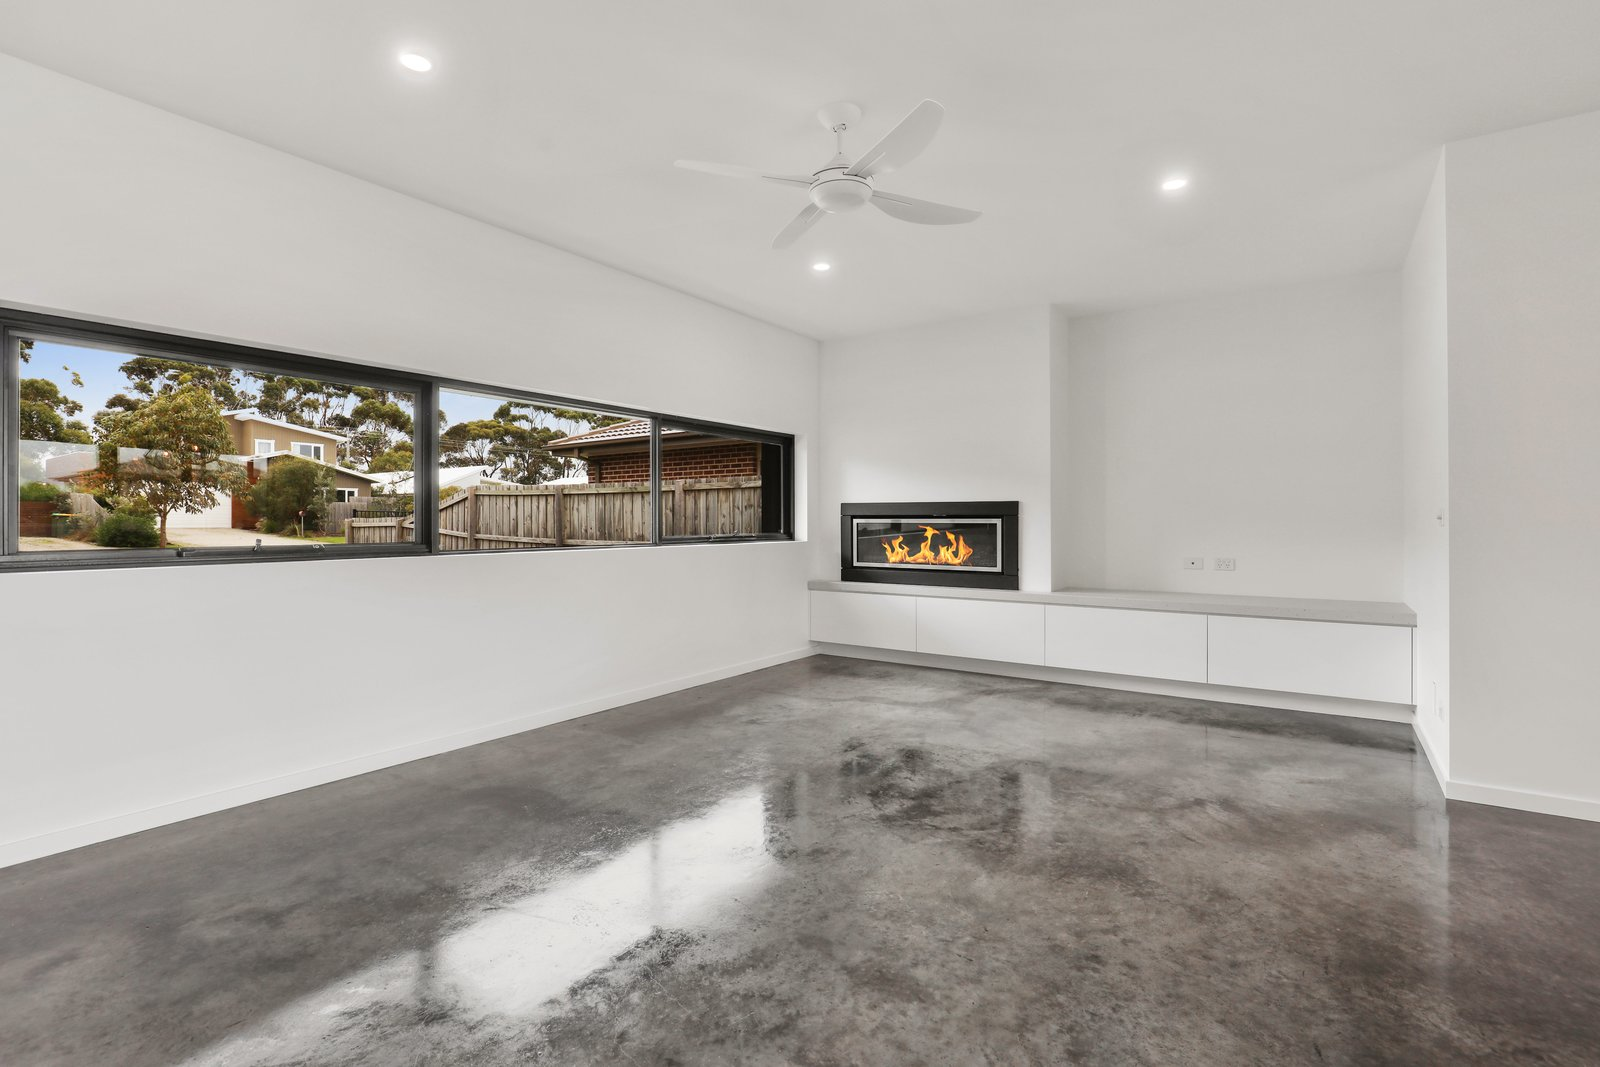 Living Room, Recessed Lighting, Gas Burning Fireplace, and Concrete Floor  Tamara Crecsent by Inverloch 3996